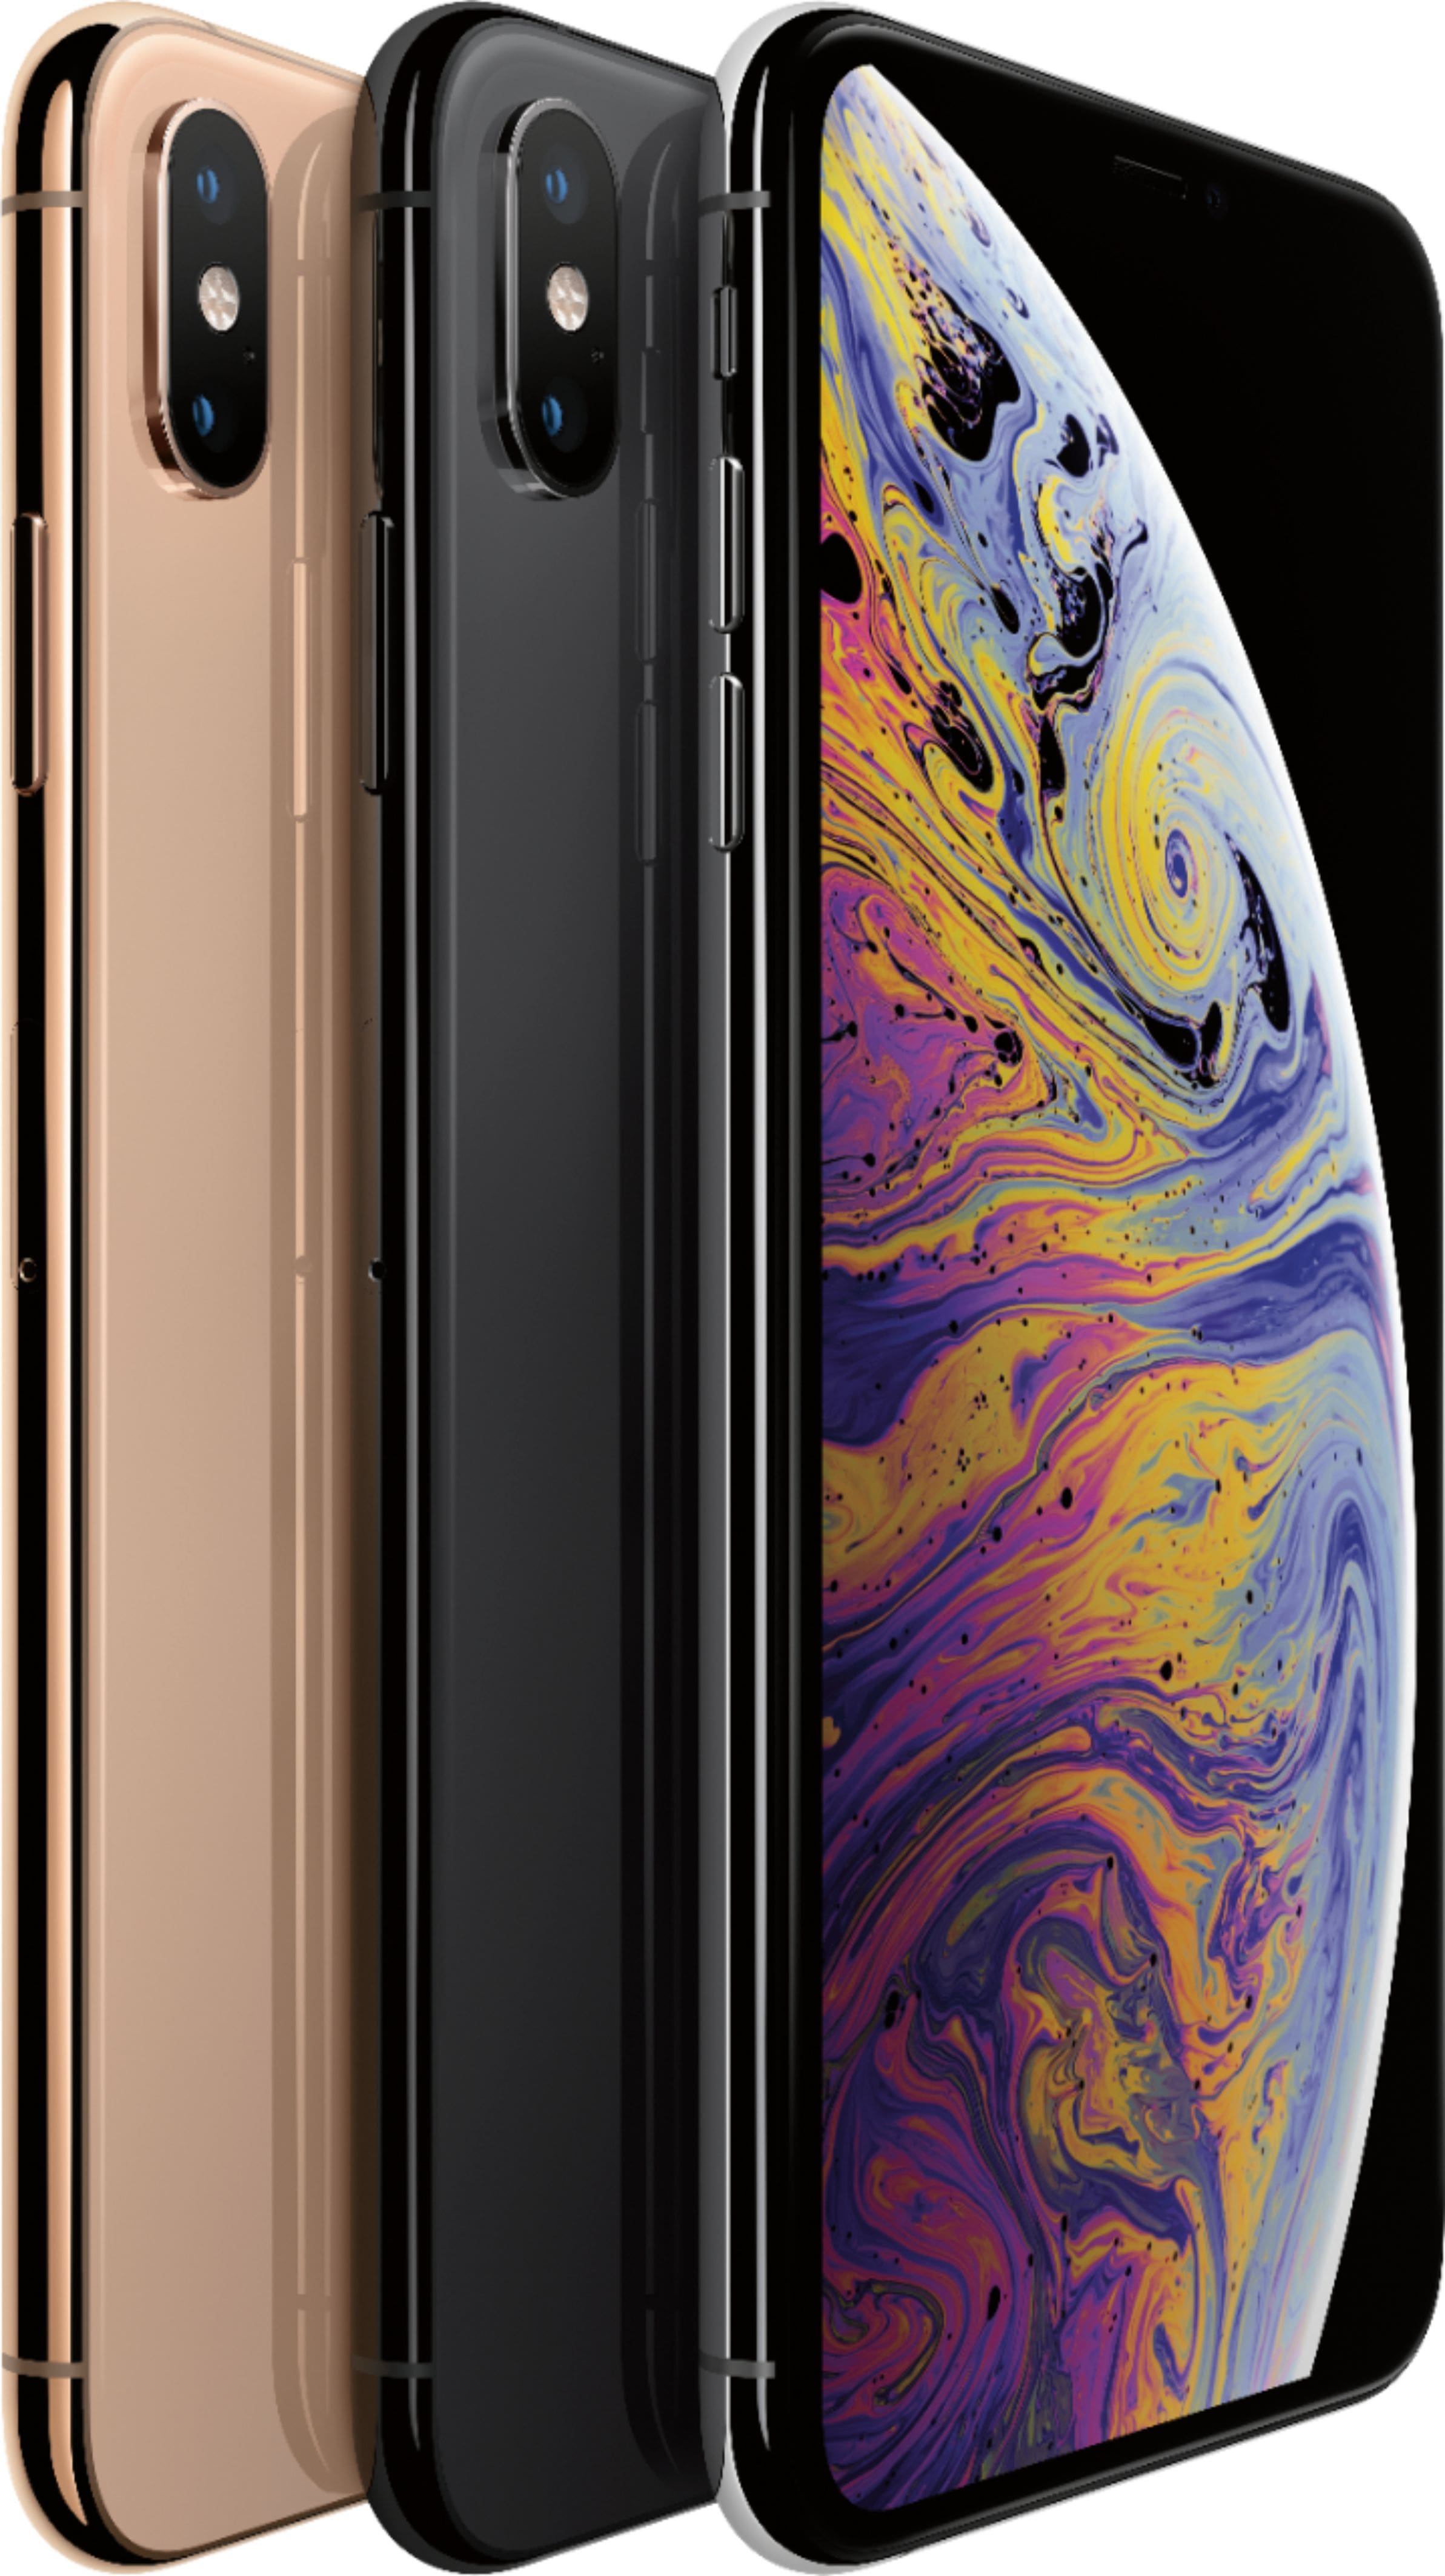 Verizon Apple Iphone Xs Max 512gb 700 Off 27 Mo Gold Space Gray Silver 650